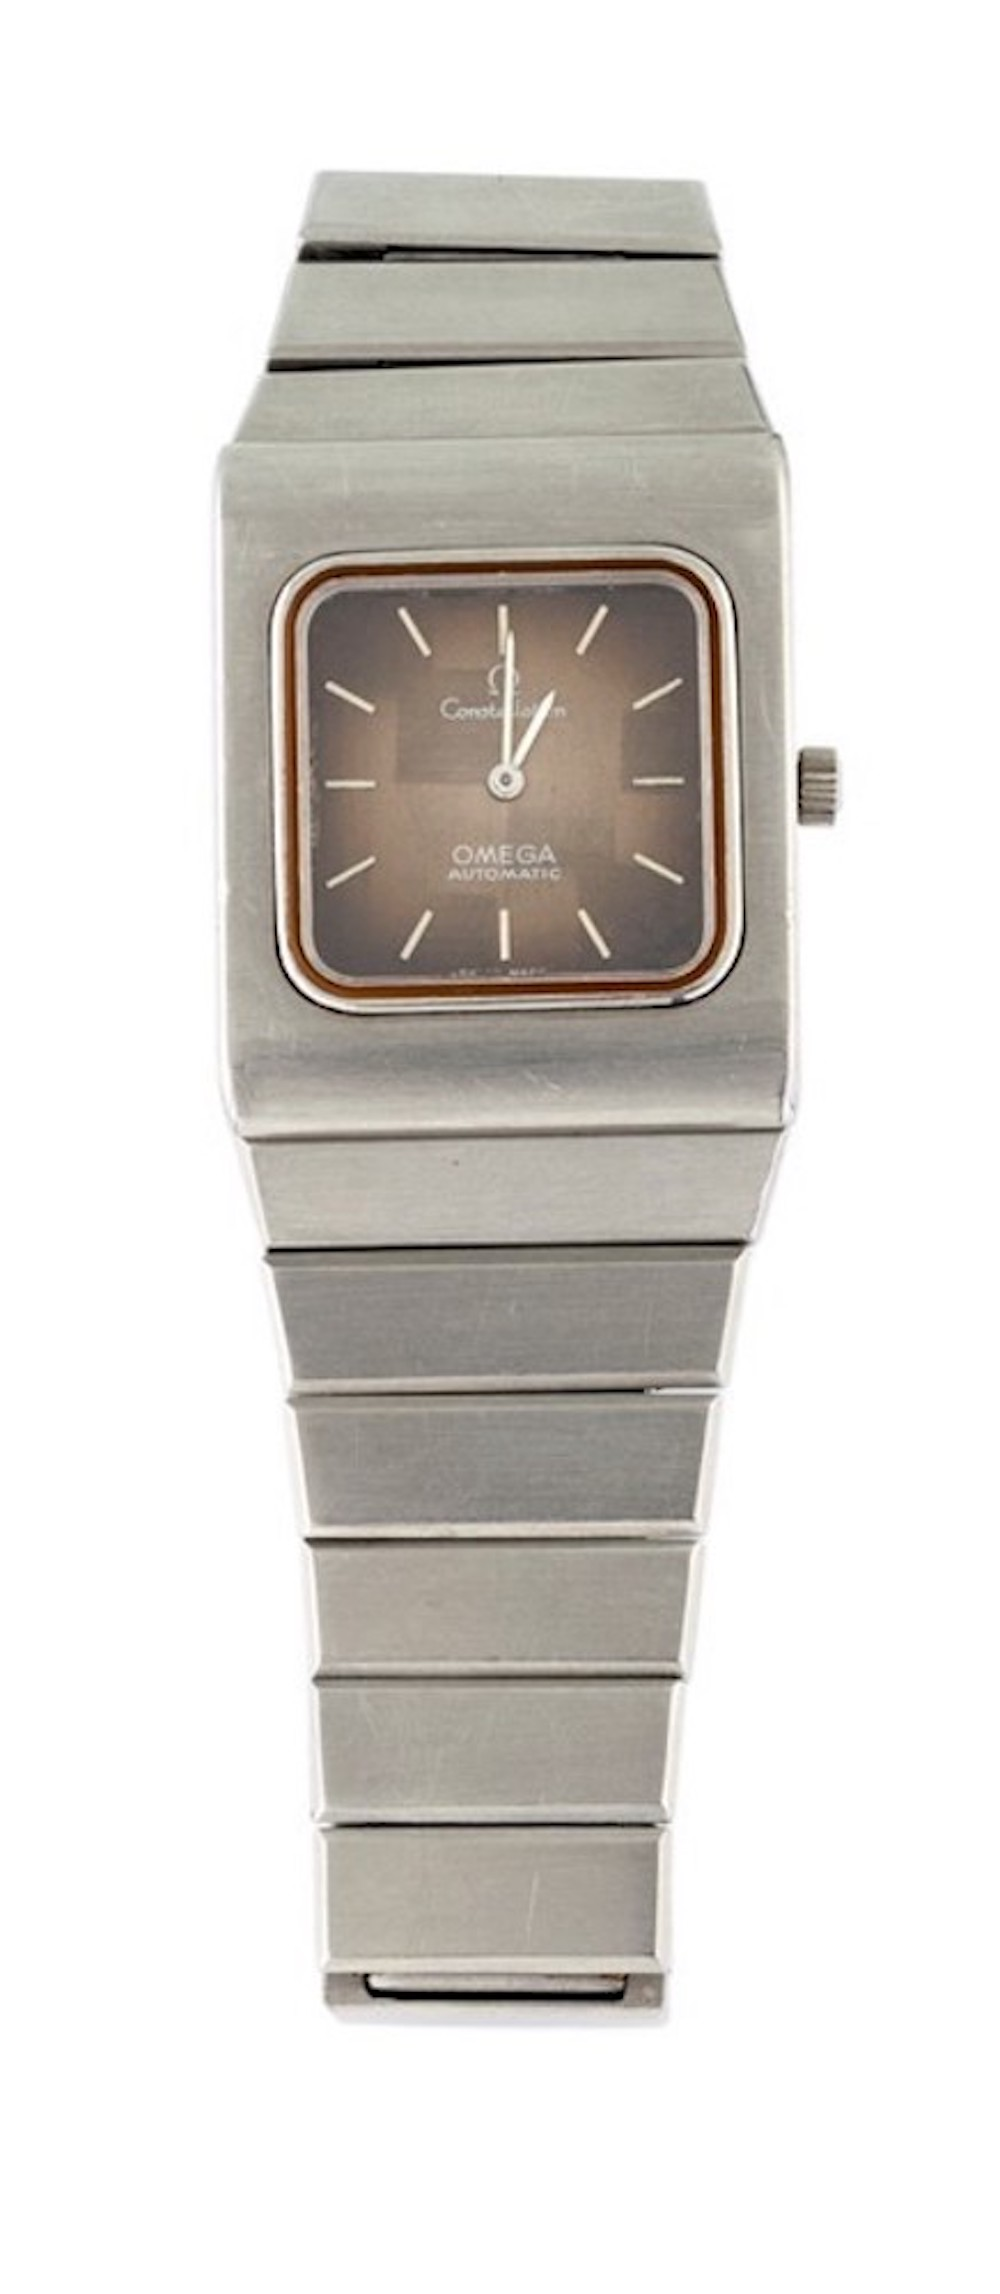 OMEGA CONSTELLATION. THE 70's